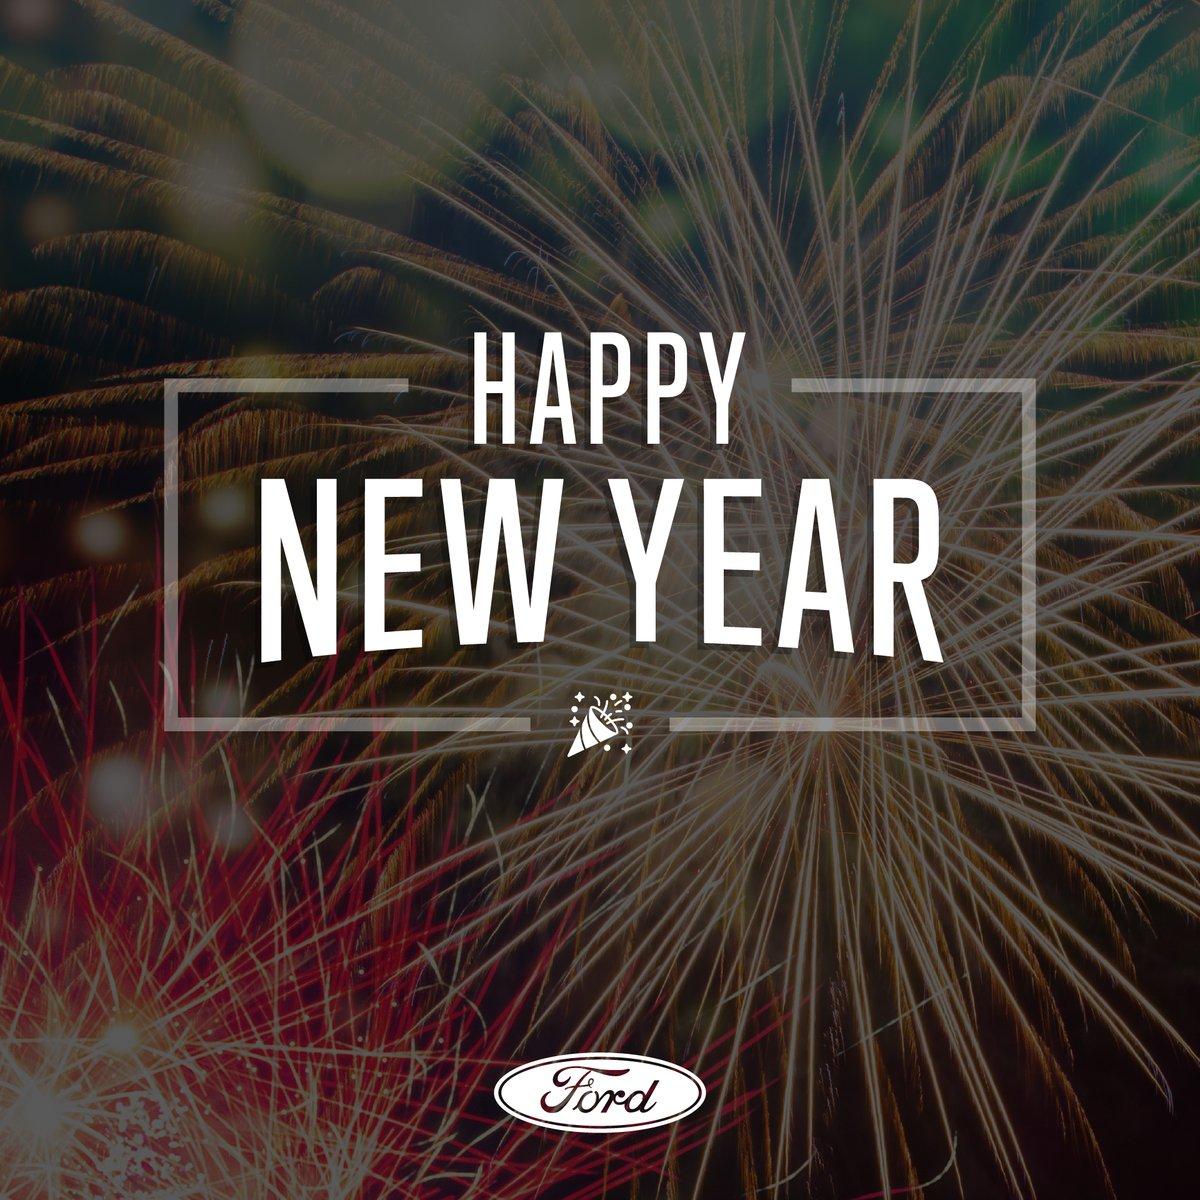 Happy New Year from all of us at Southern Quality Ford! https://t.co/i8OBRMCAOg